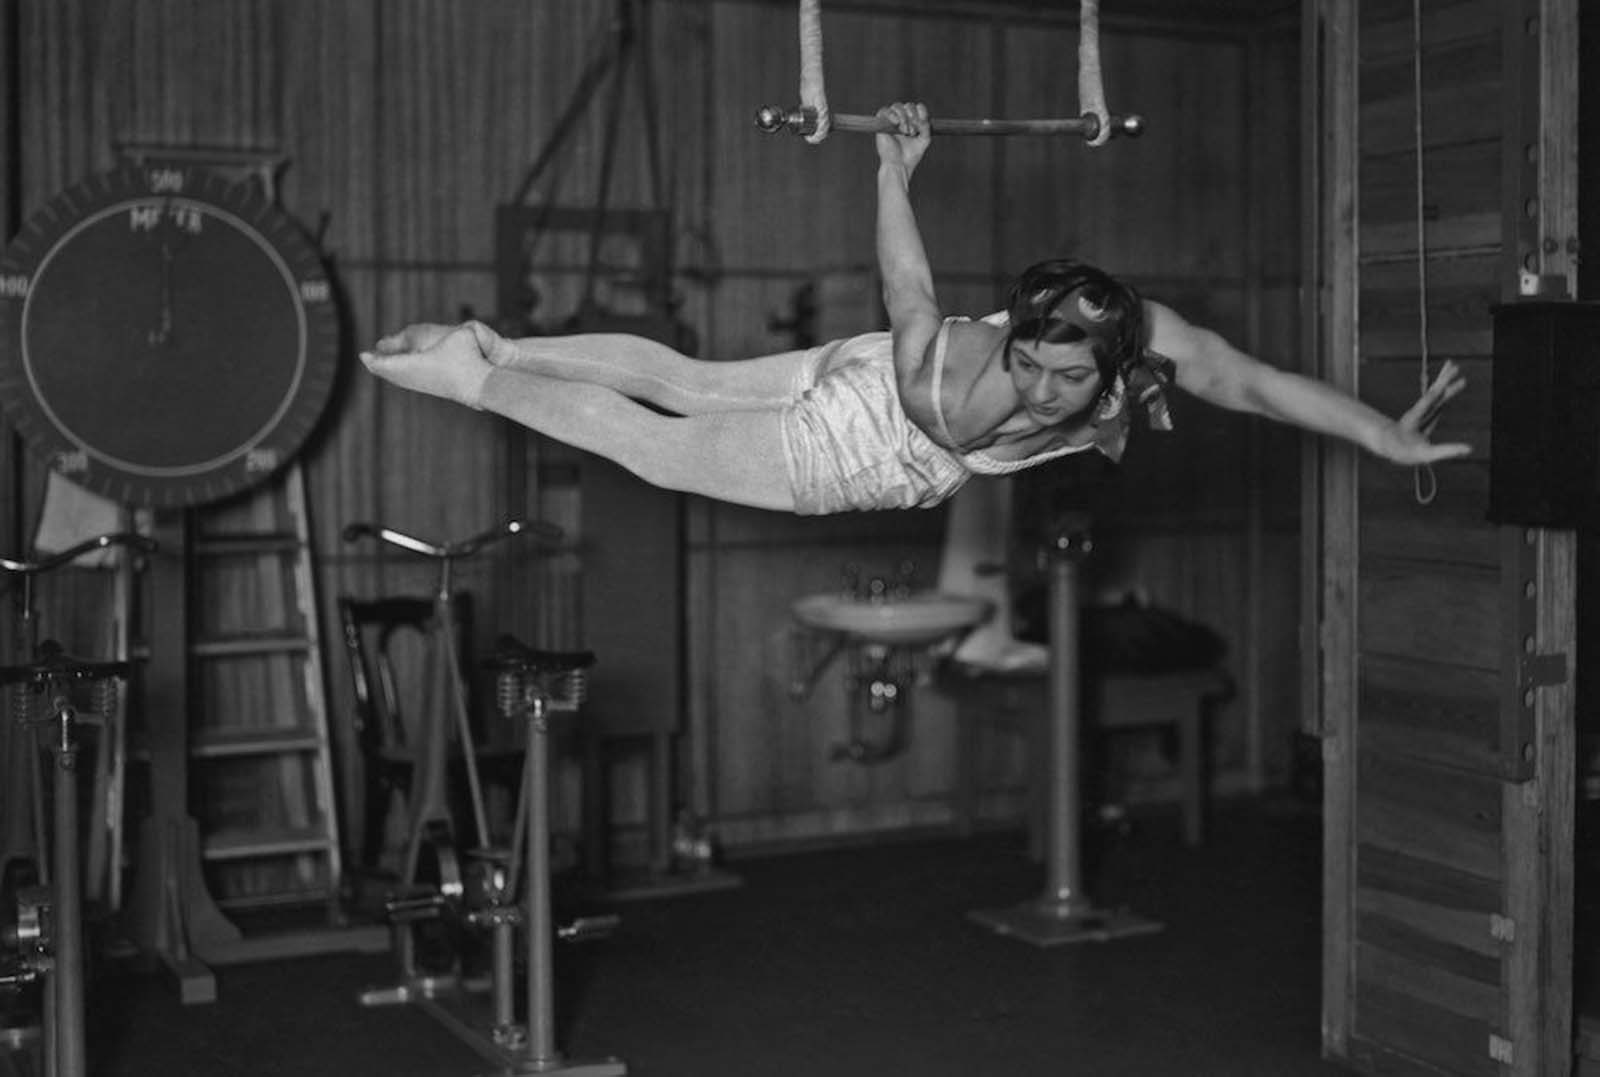 A woman using an apparatus in the gymnasium of the ocean liner S.S. Bremen. 1930s.